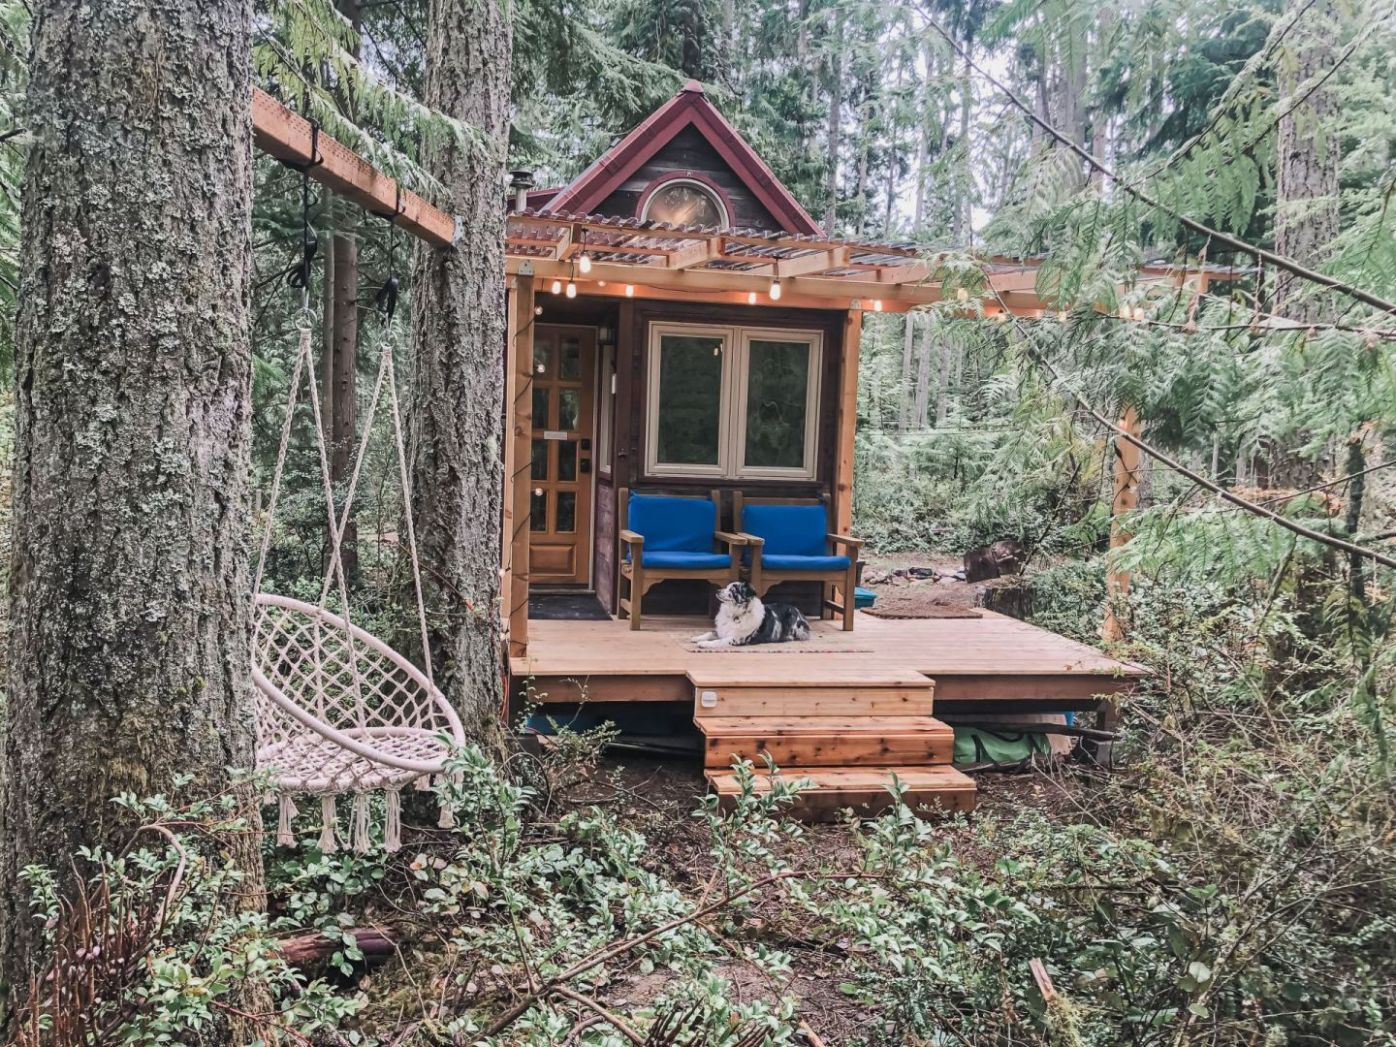 Build Archives - Tiny House Giant Journey